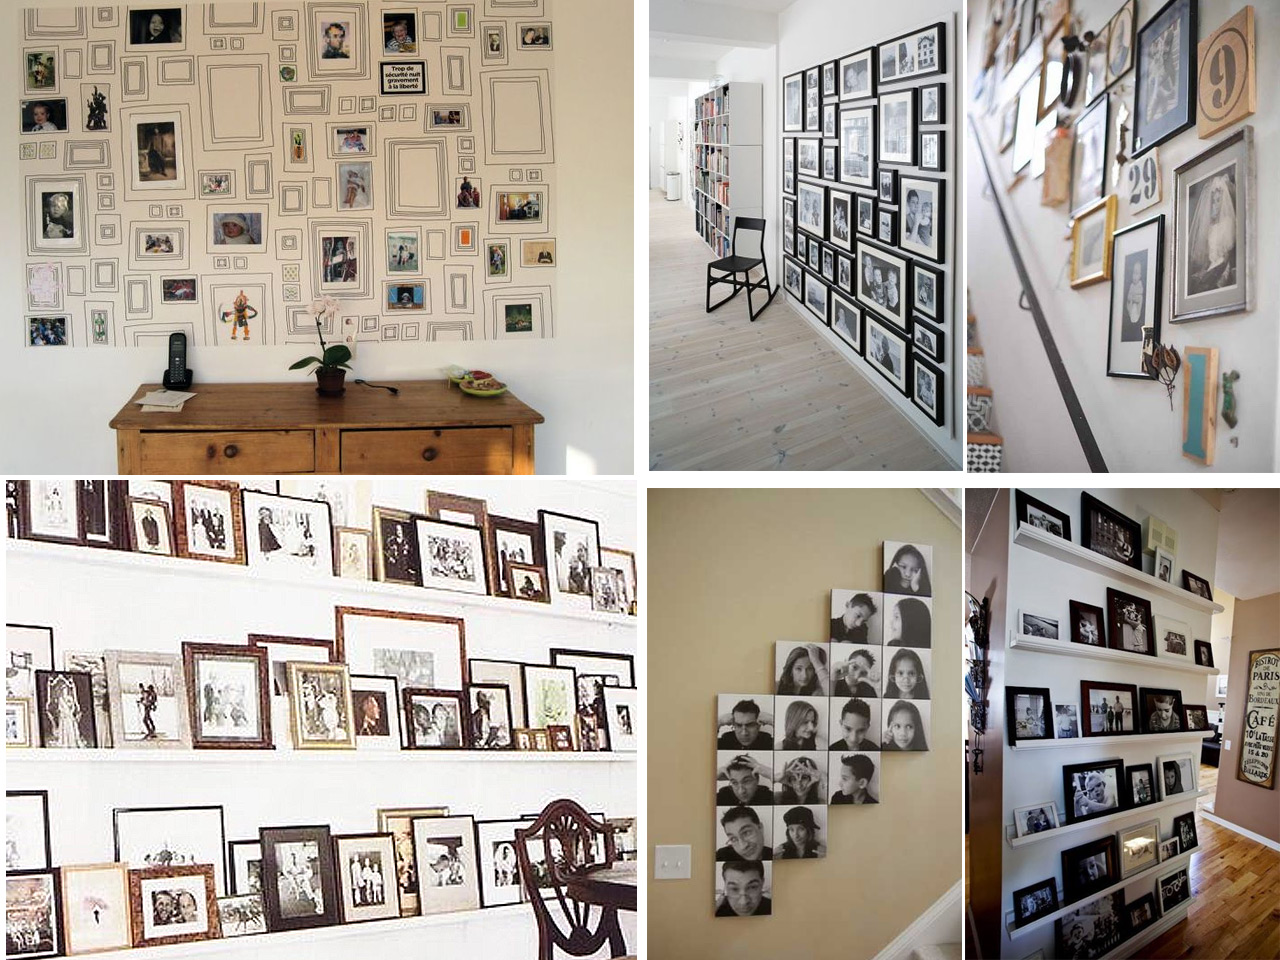 60 brillantes ideas para decorar con fotos familiares for Decorar paredes con laminas